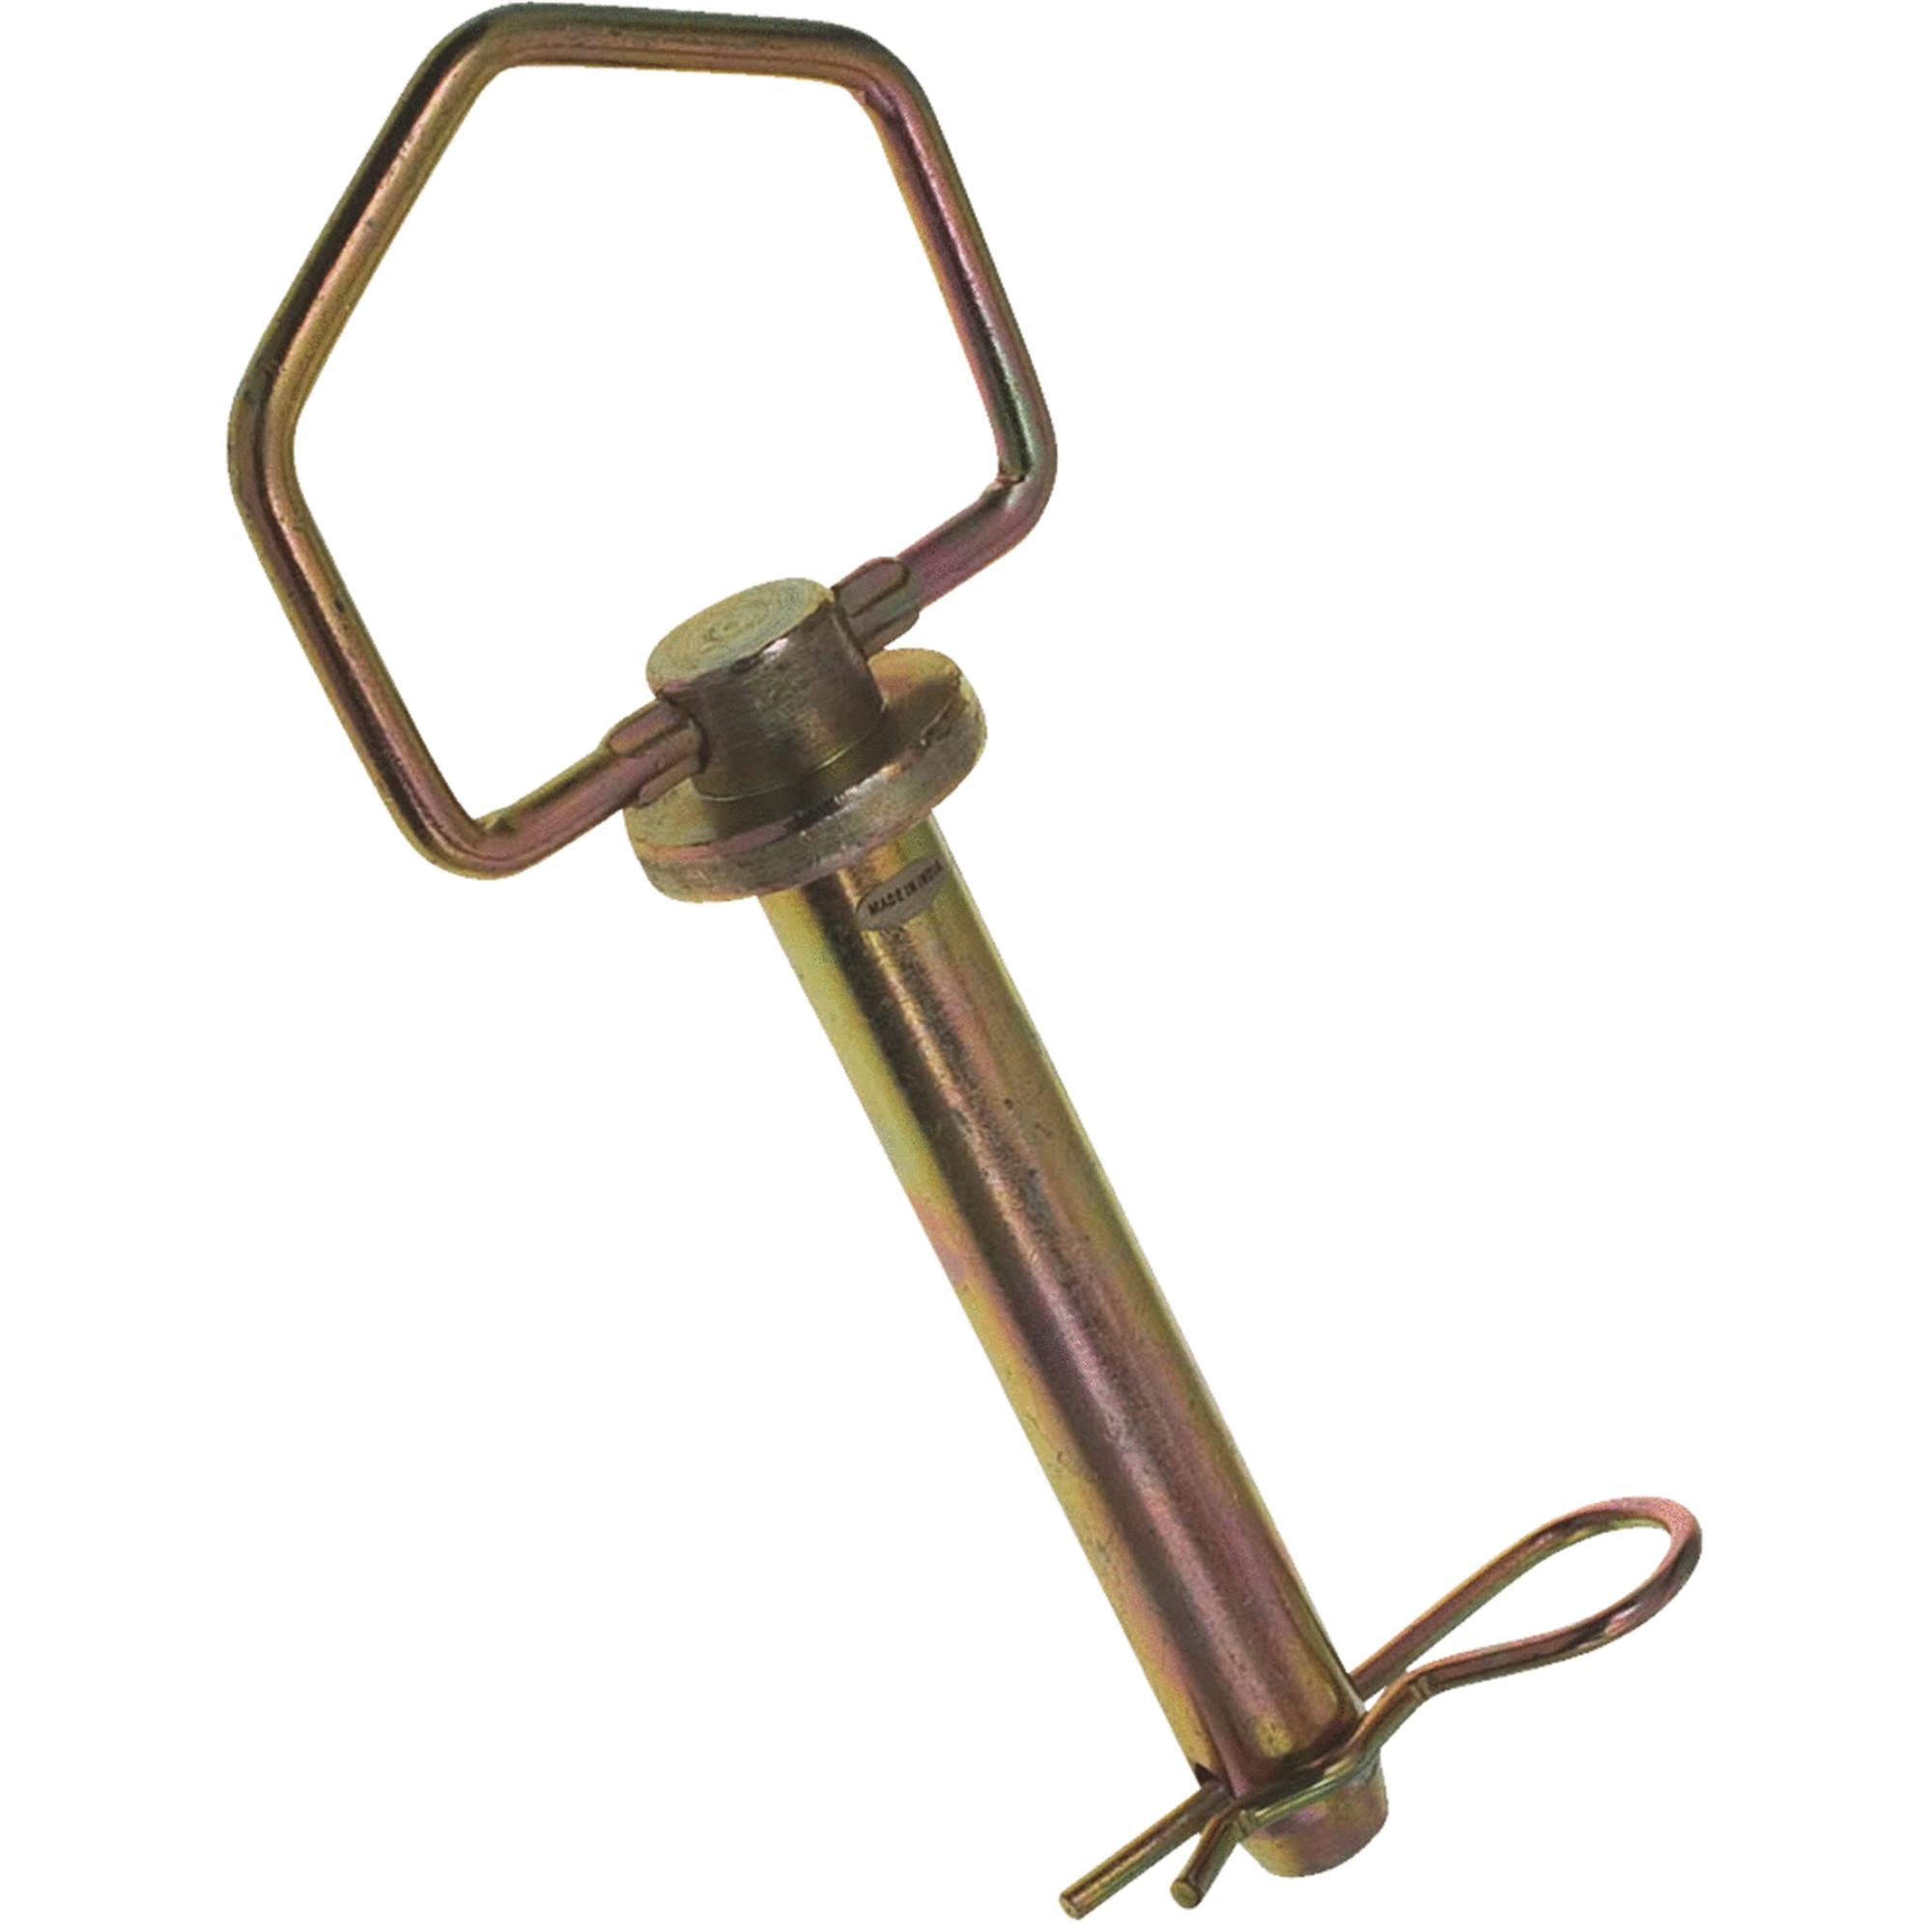 Speeco Swivel Handle Forged Hitch Pin